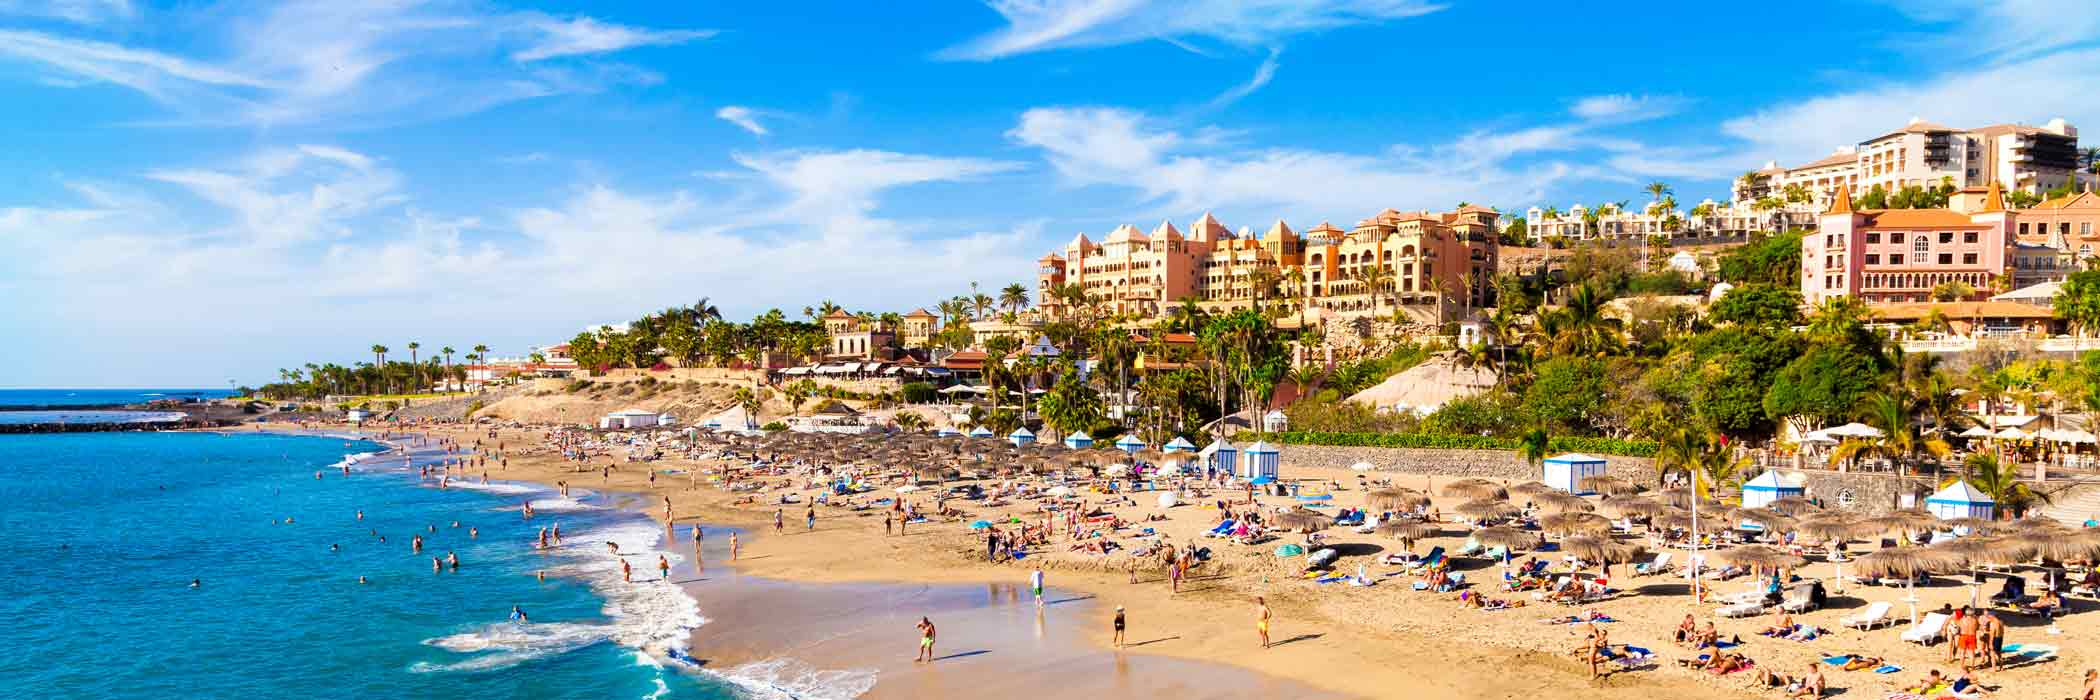 TUI Holidays To Tenerife